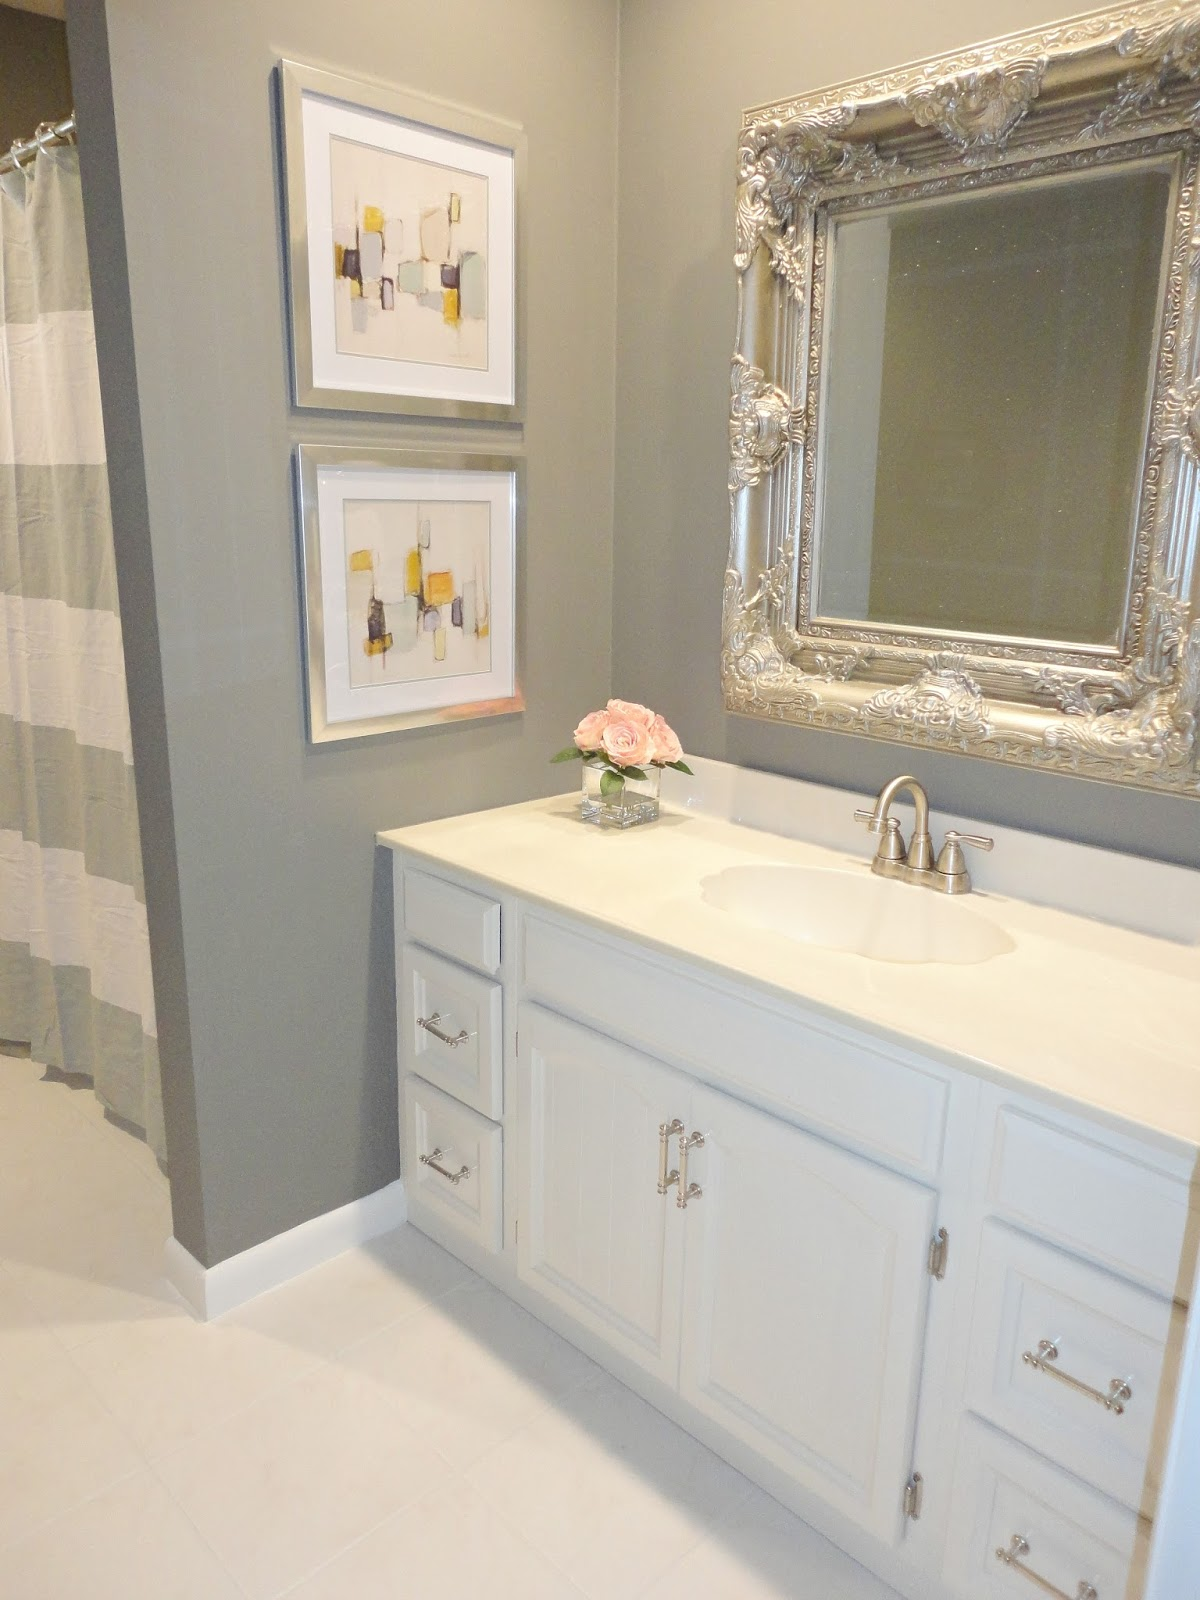 livelovediy diy bathroom remodel on a budget. Black Bedroom Furniture Sets. Home Design Ideas